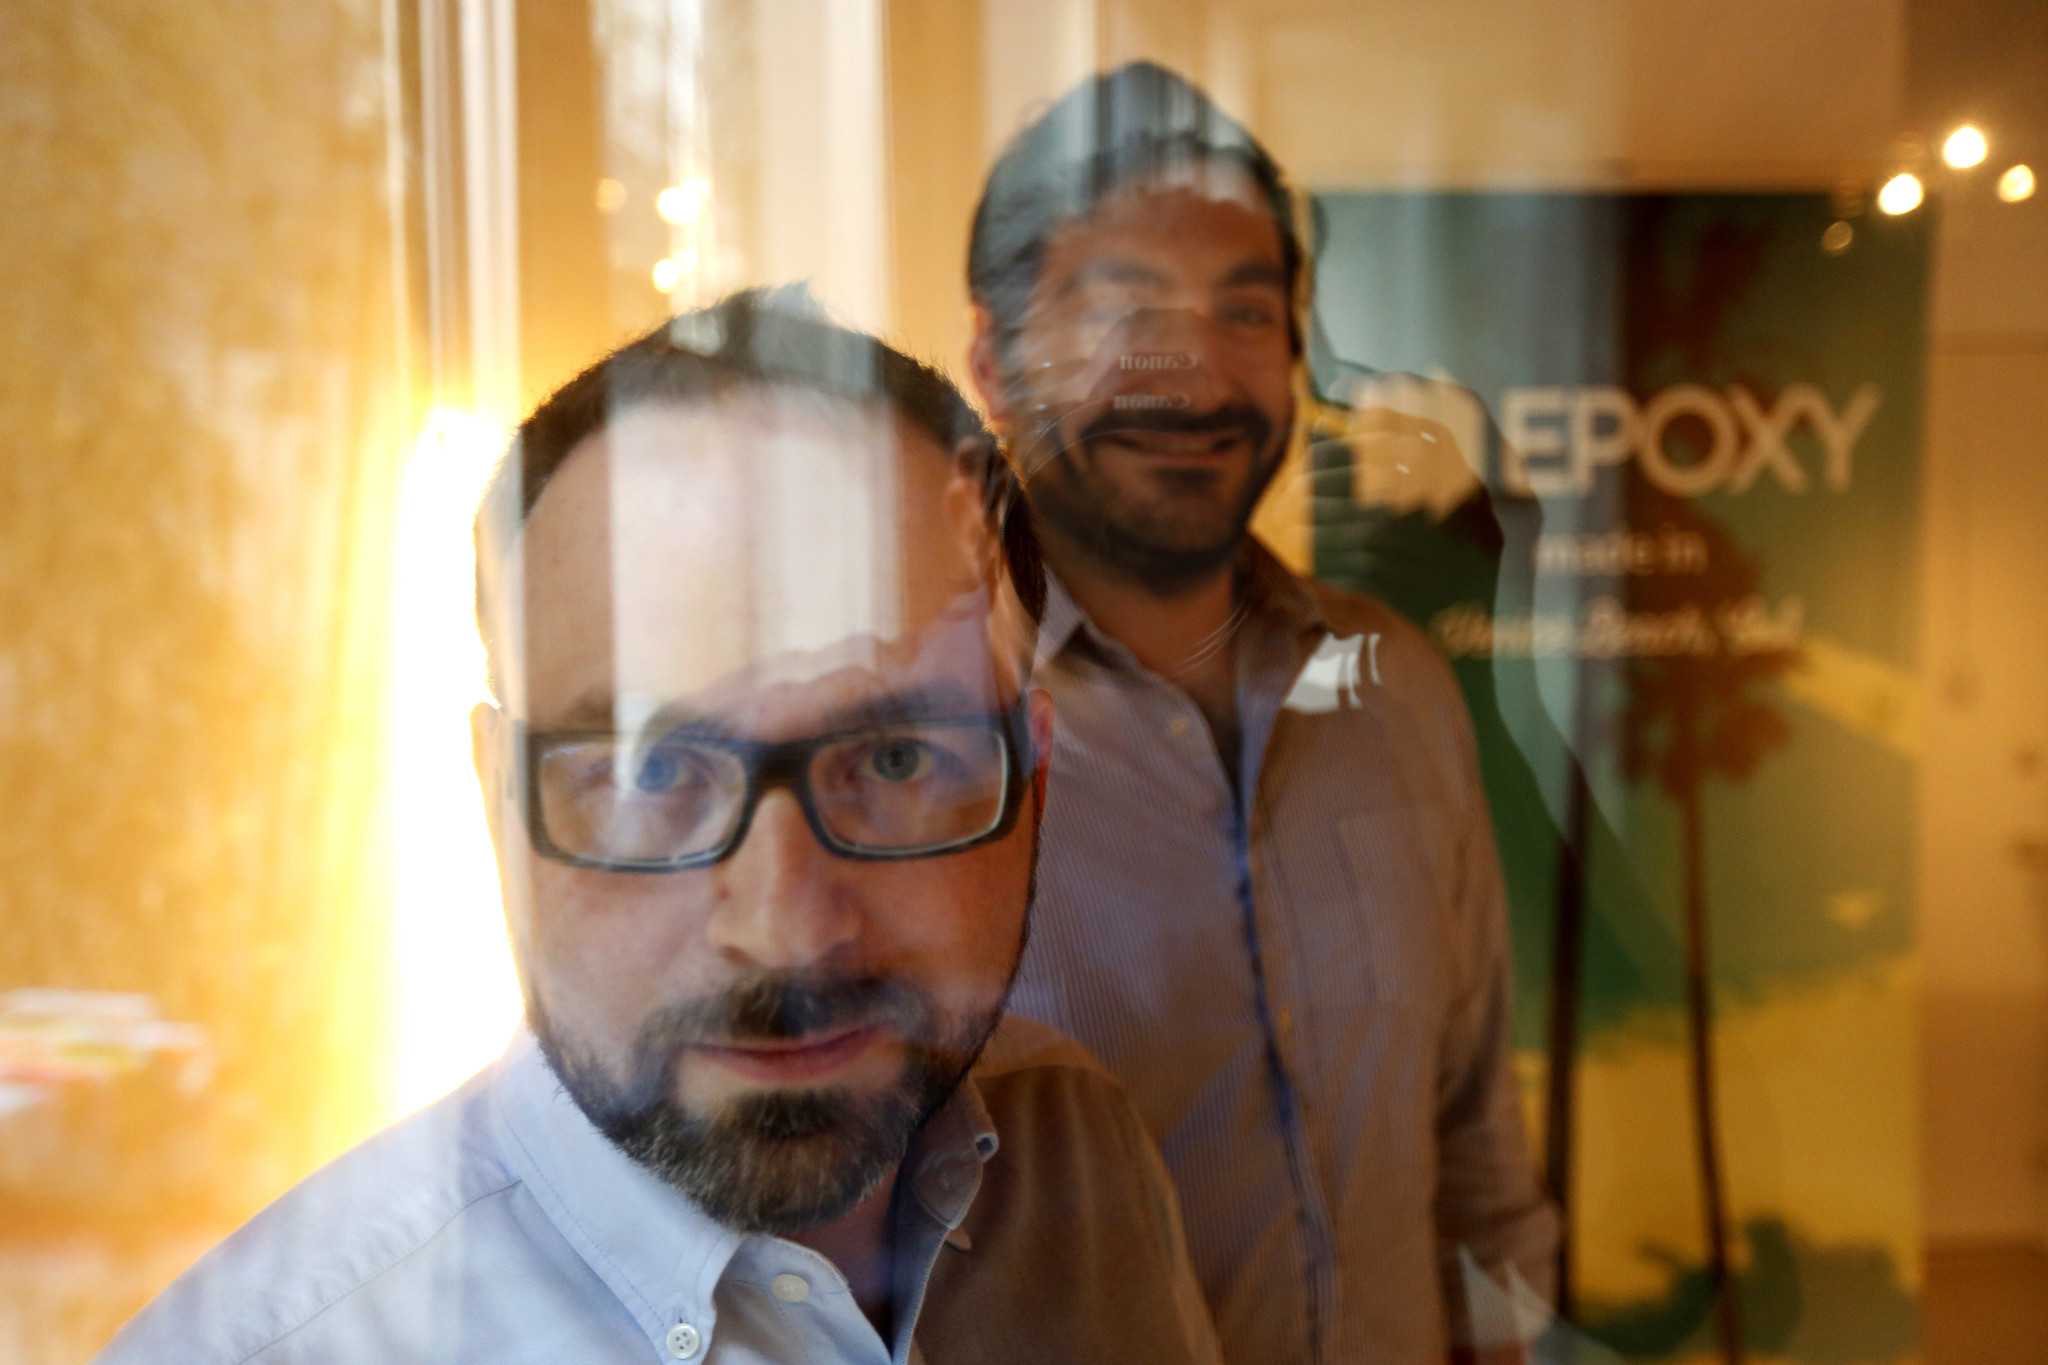 Epoxy co-founders Juan Bruce, left, and Jason Ahmad at the company's headquarters in Venice in January.